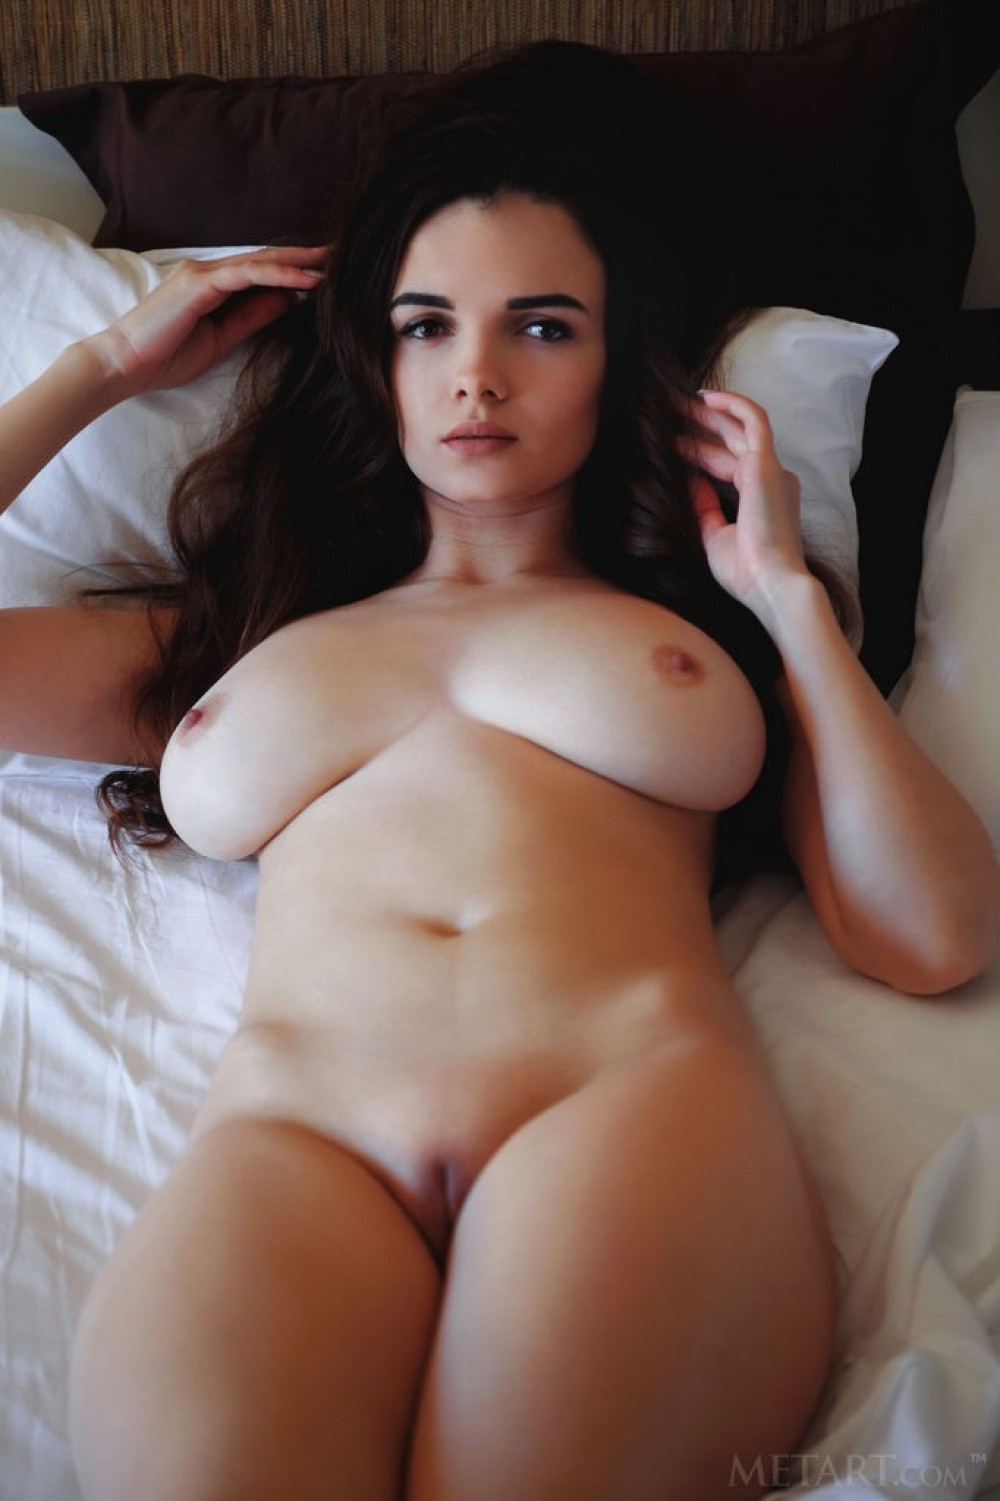 Hottie plays with her big boobs in her bed